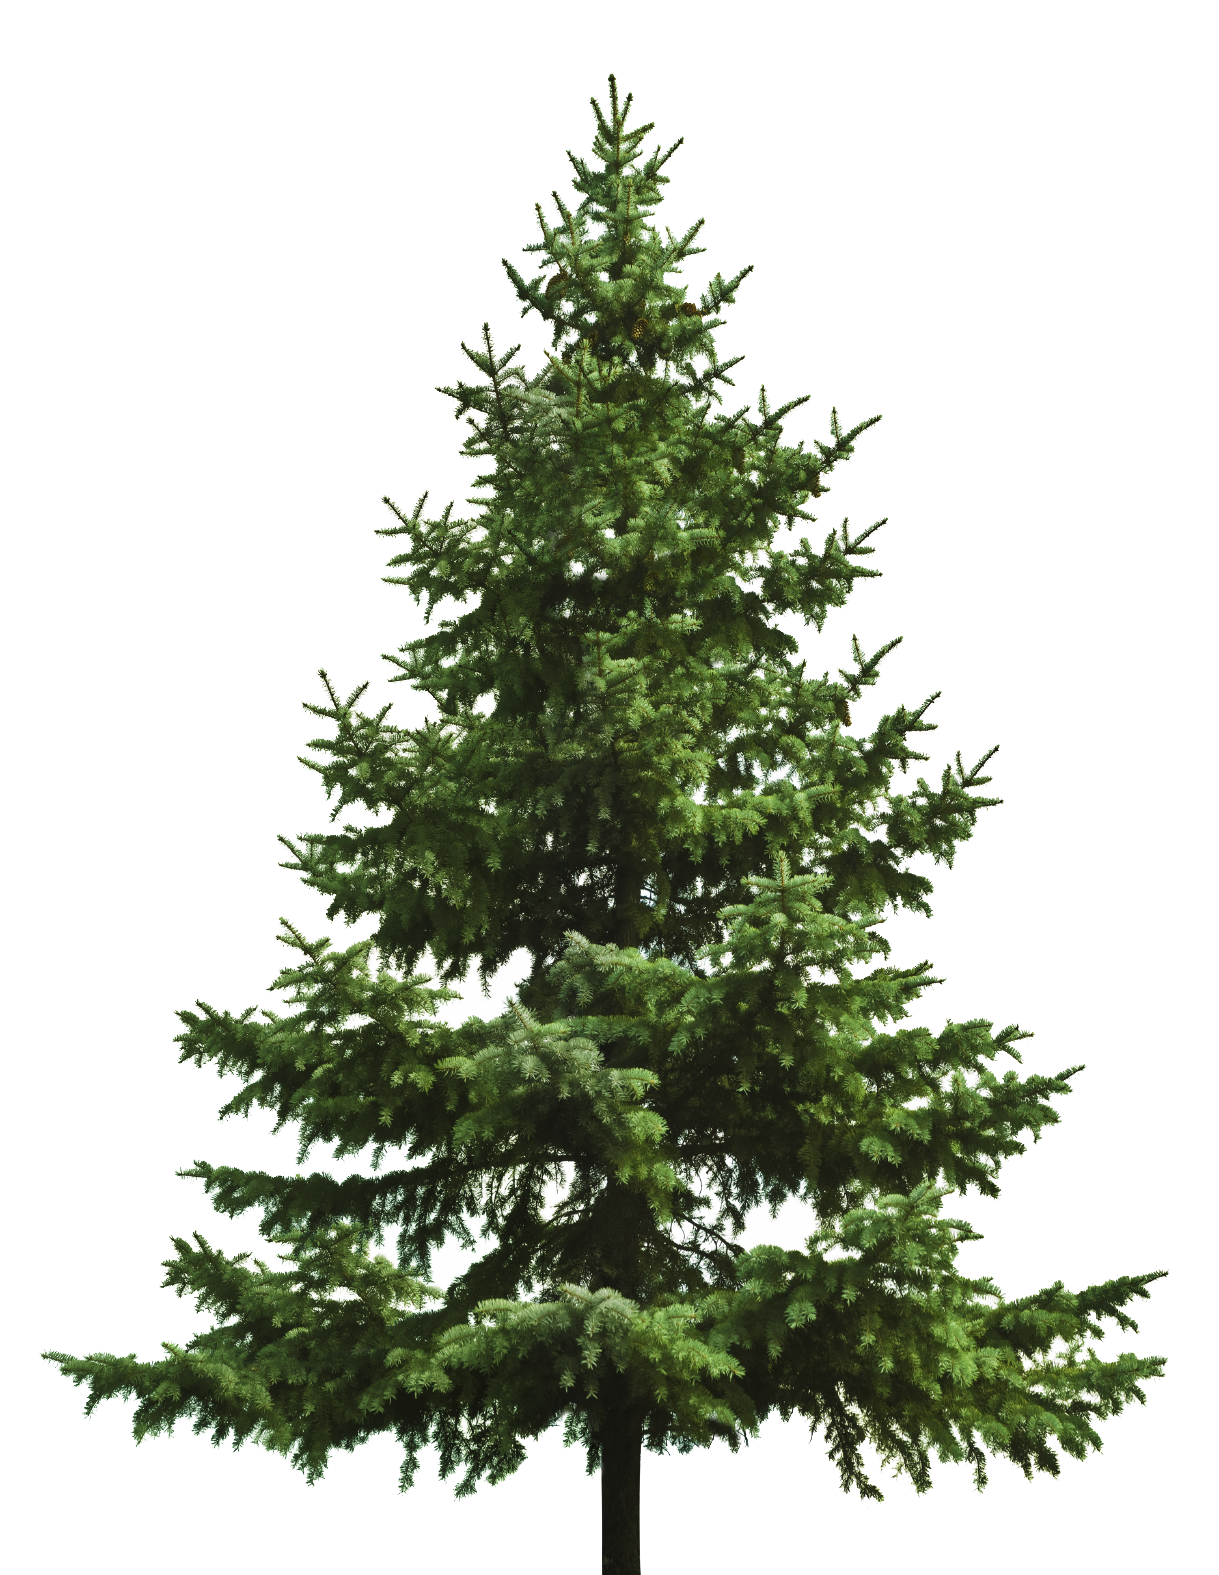 Free download of christmas. Pine trees png clipart transparent download